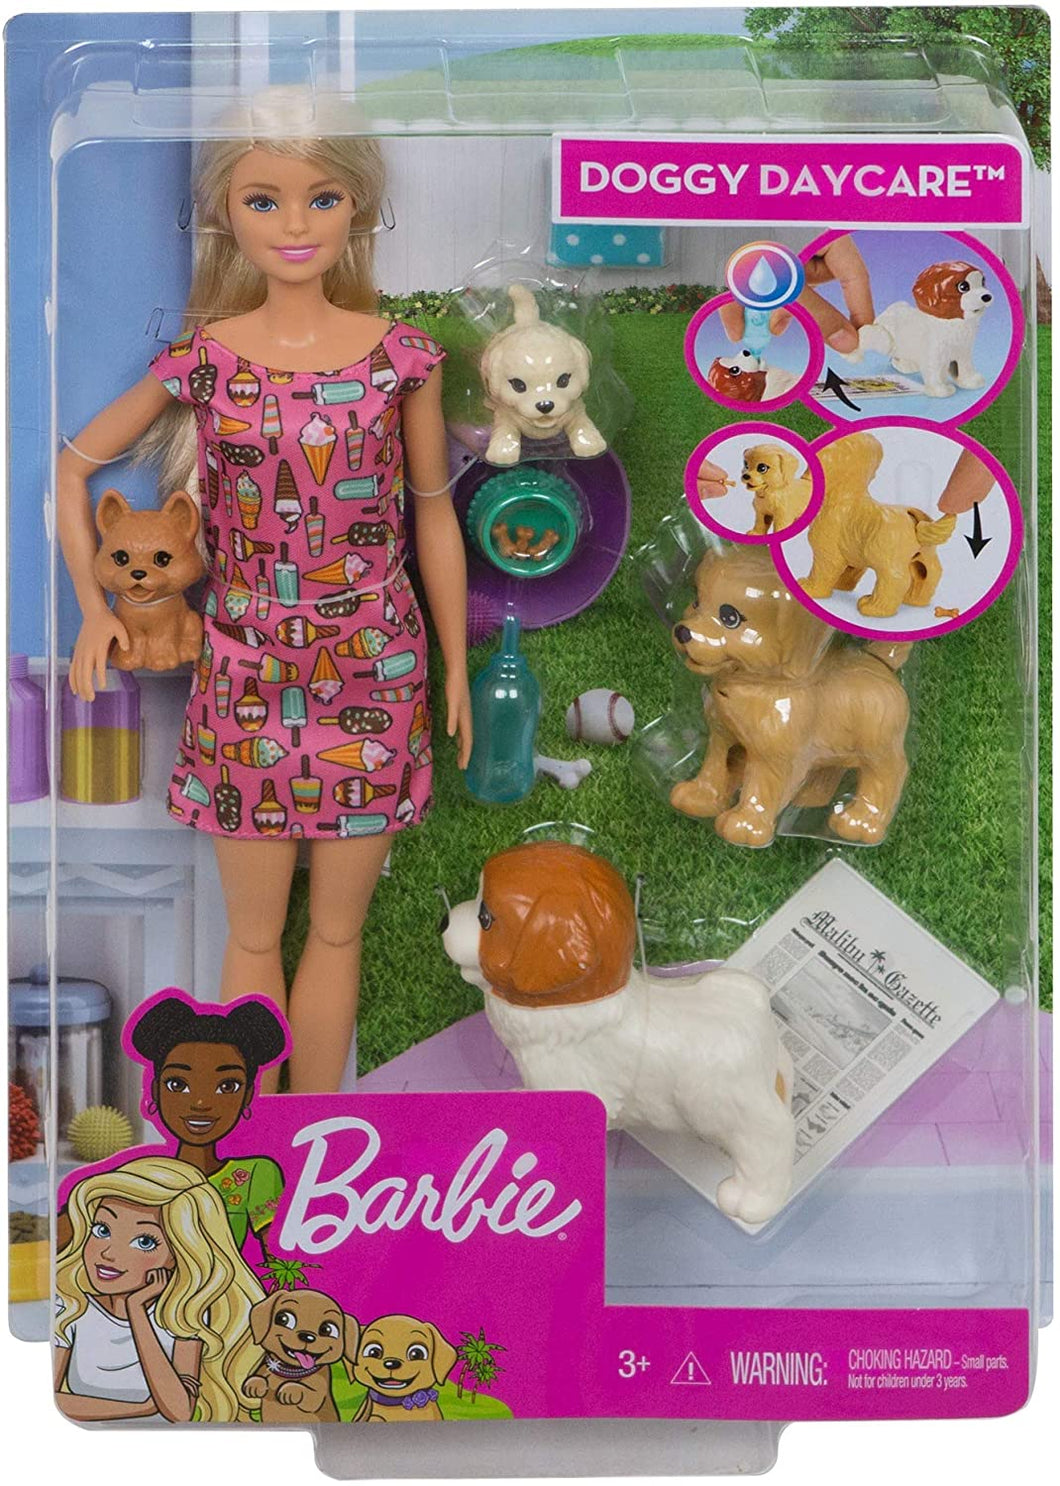 BOX DAMAGED - Barbie FXH08 Doggy Daycare Doll, Blonde and Pets Playset